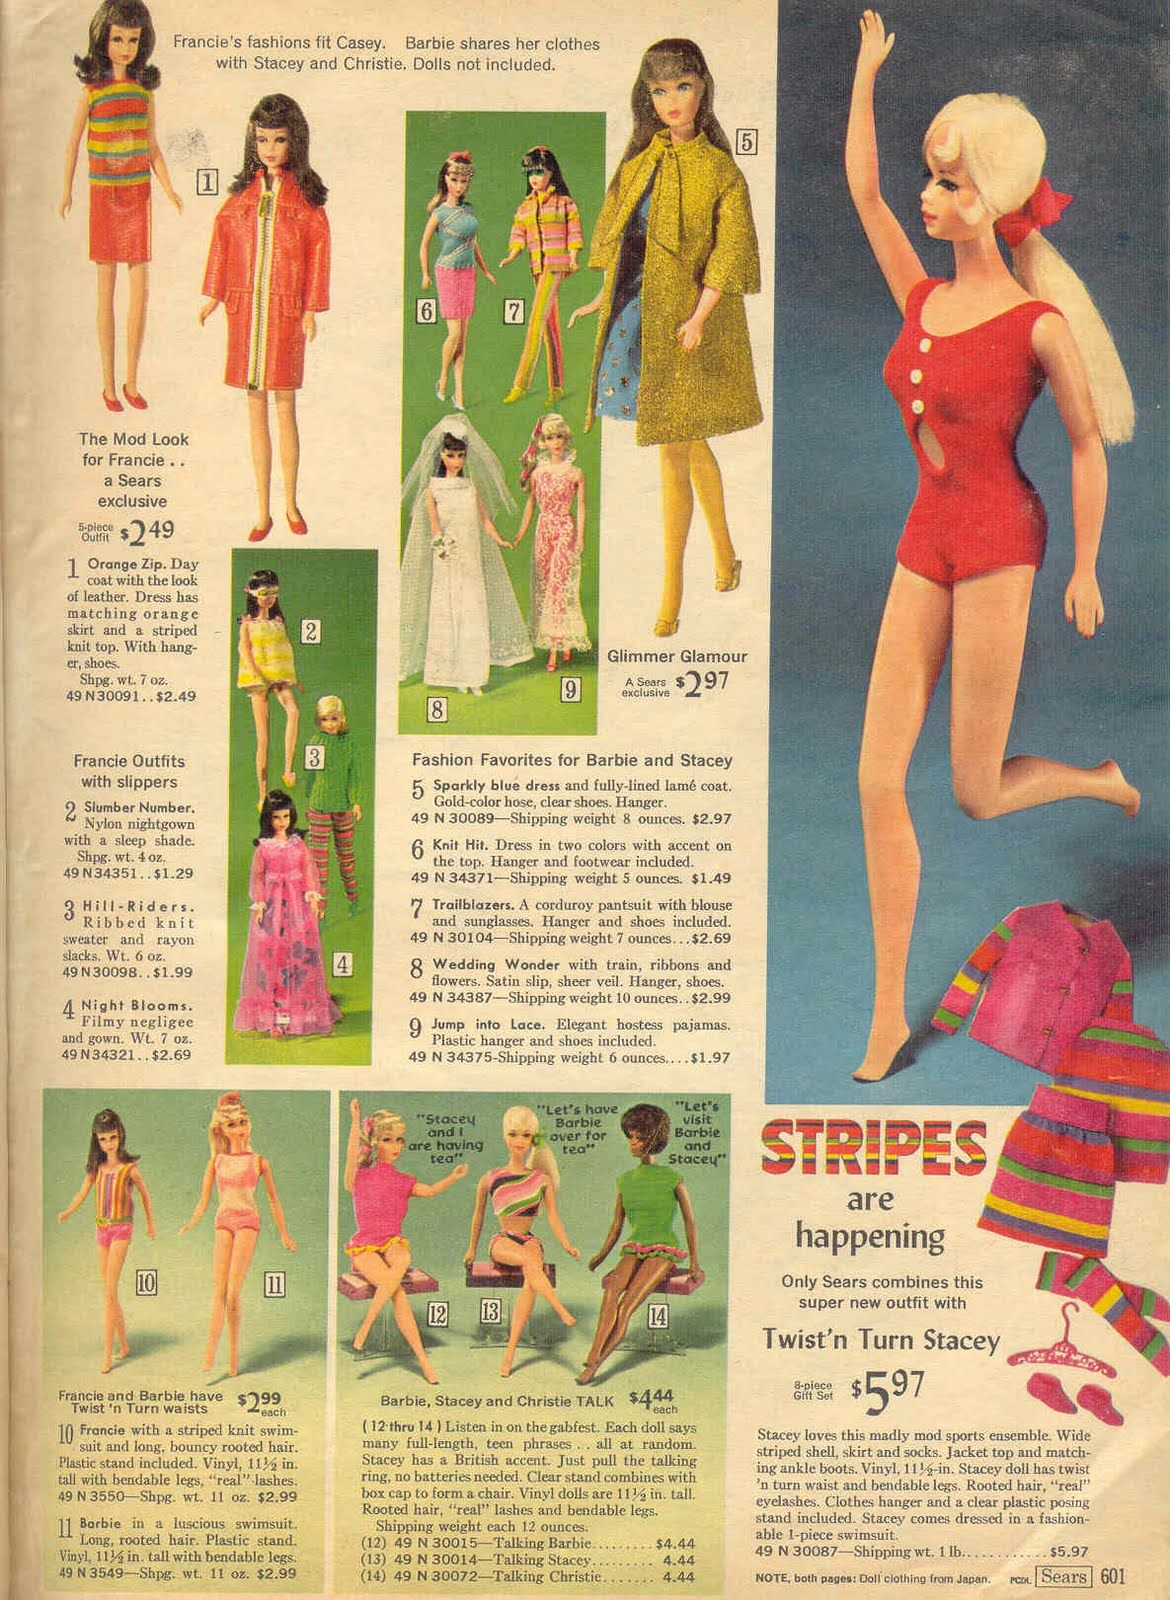 d21ad542cc75 1968 Sears Christmas Wishbook Wishbook Catalog Page - Mod TNT Barbie,  Stacey and Francie, Talking Barbie, Stacey and Christie with 3 Mod Pink /  Purple Posin ...